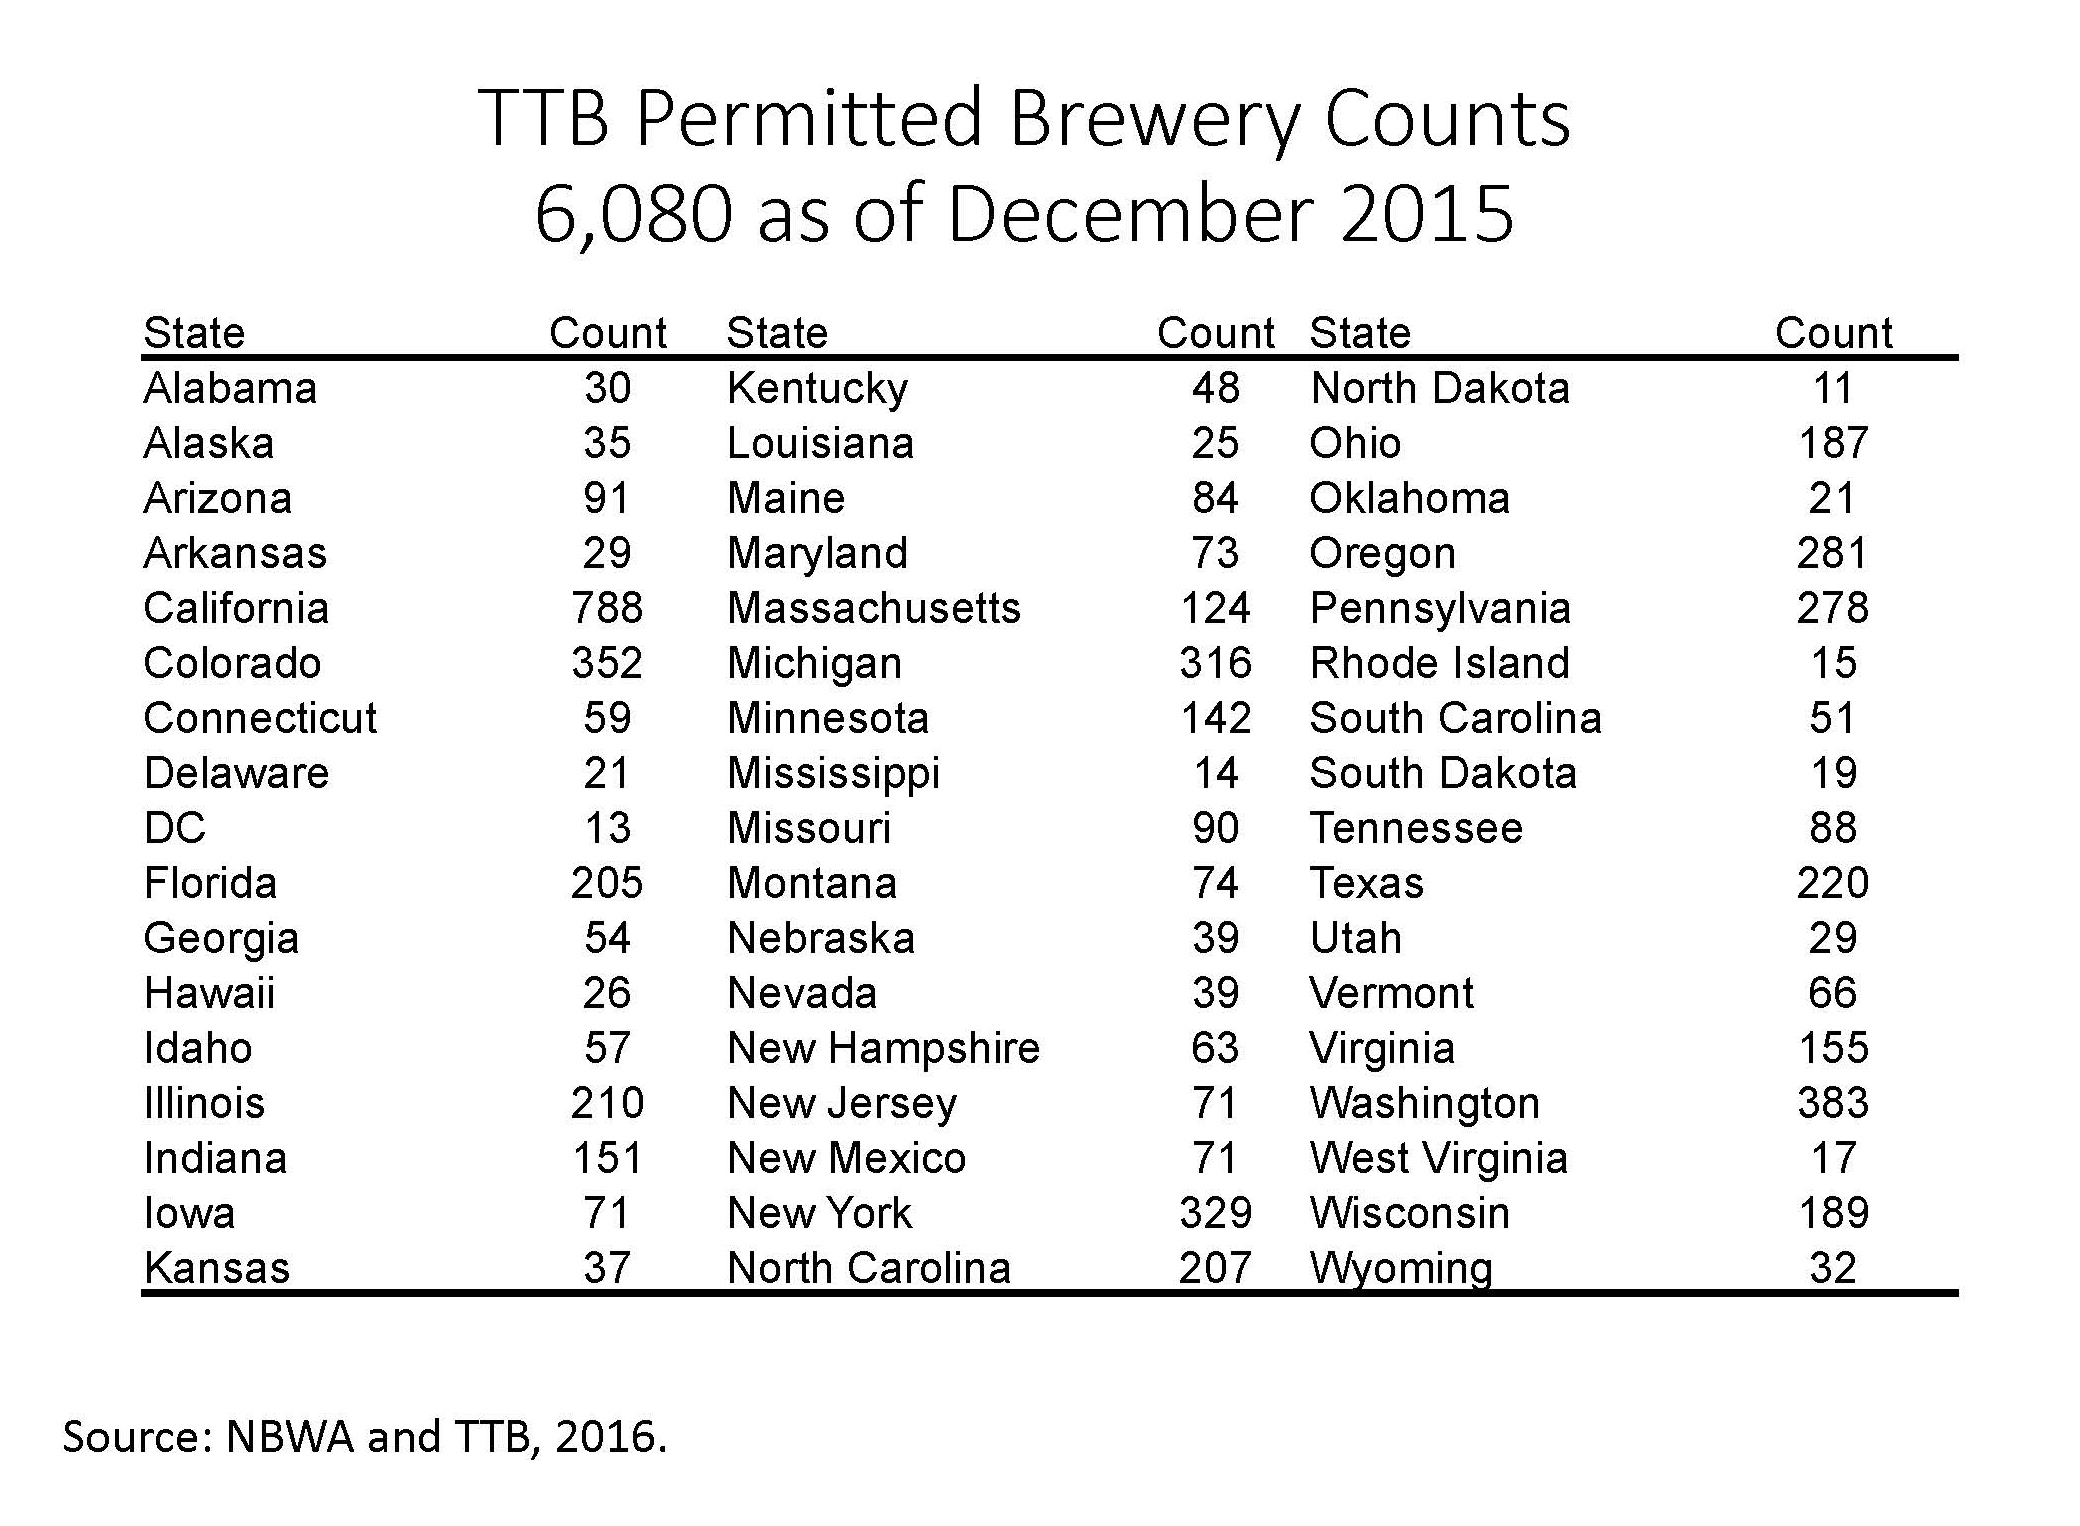 TTB Permitted Brewery Counts as of December 2015